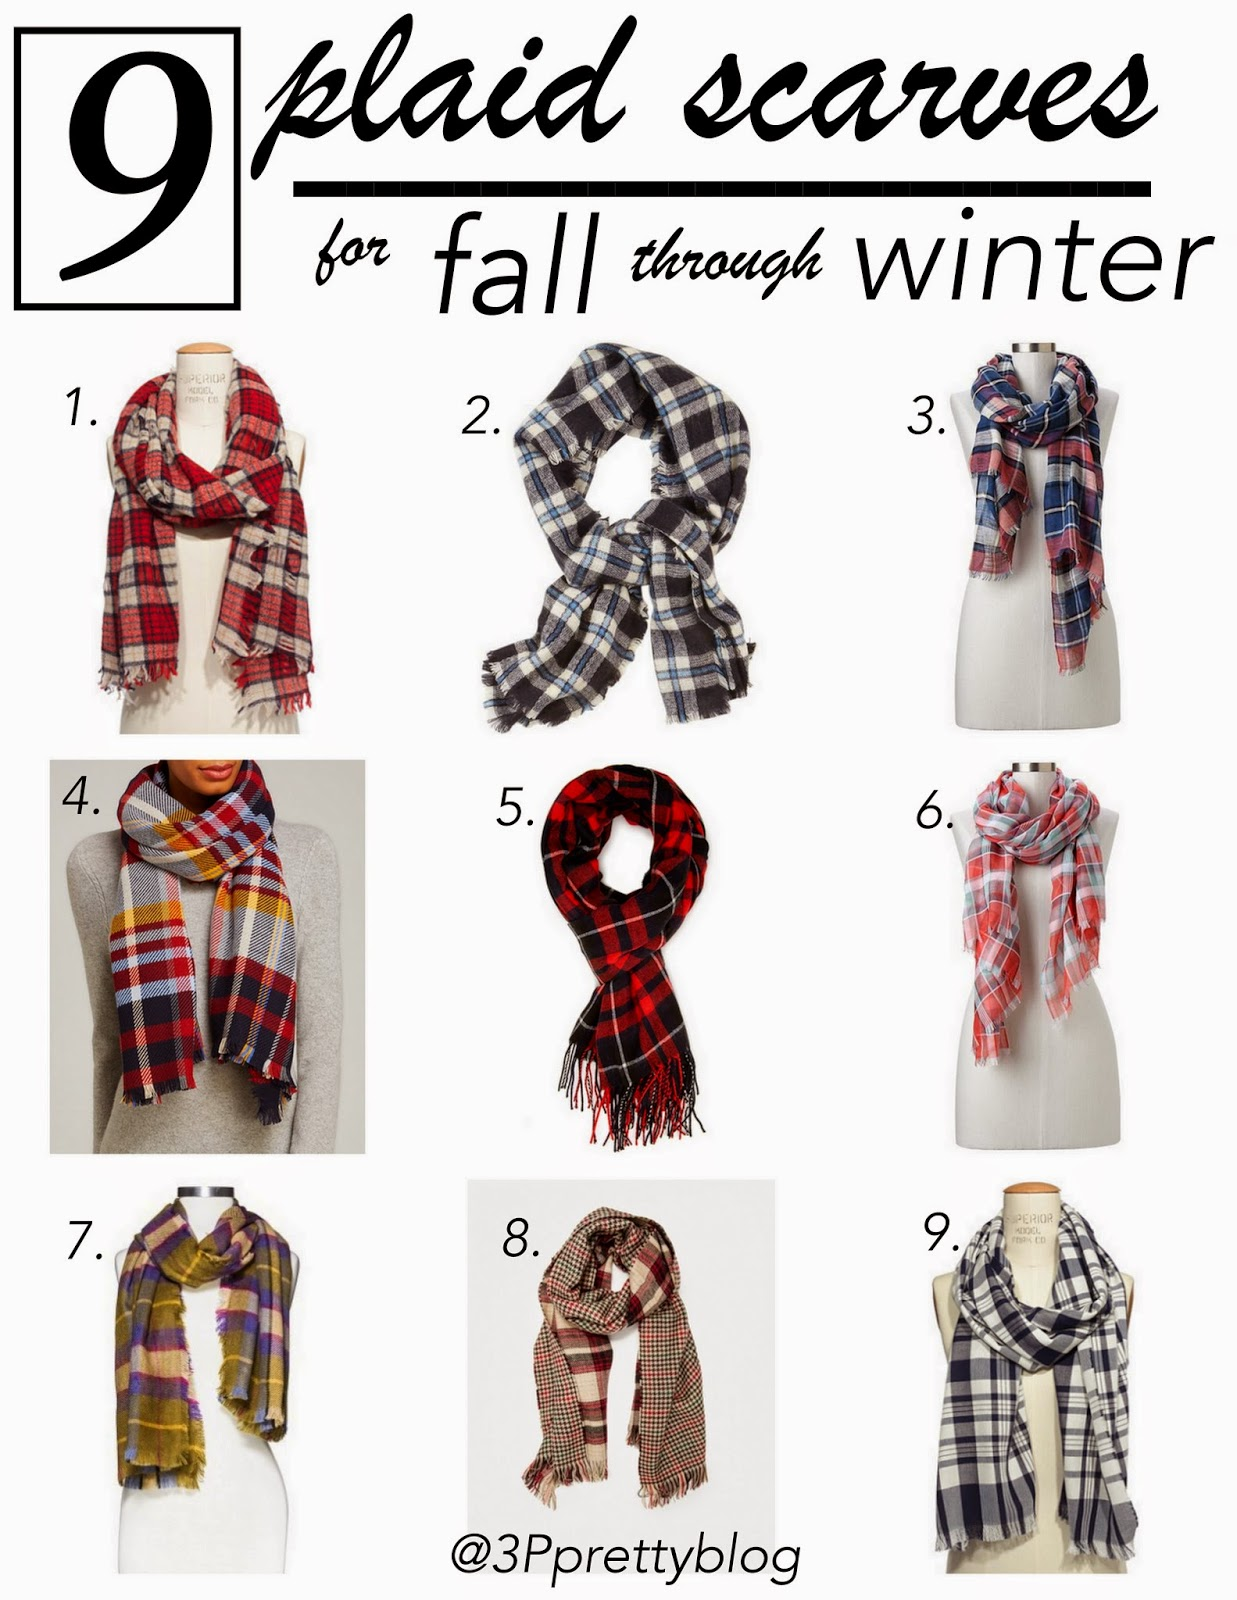 9 plaid scarves for fall